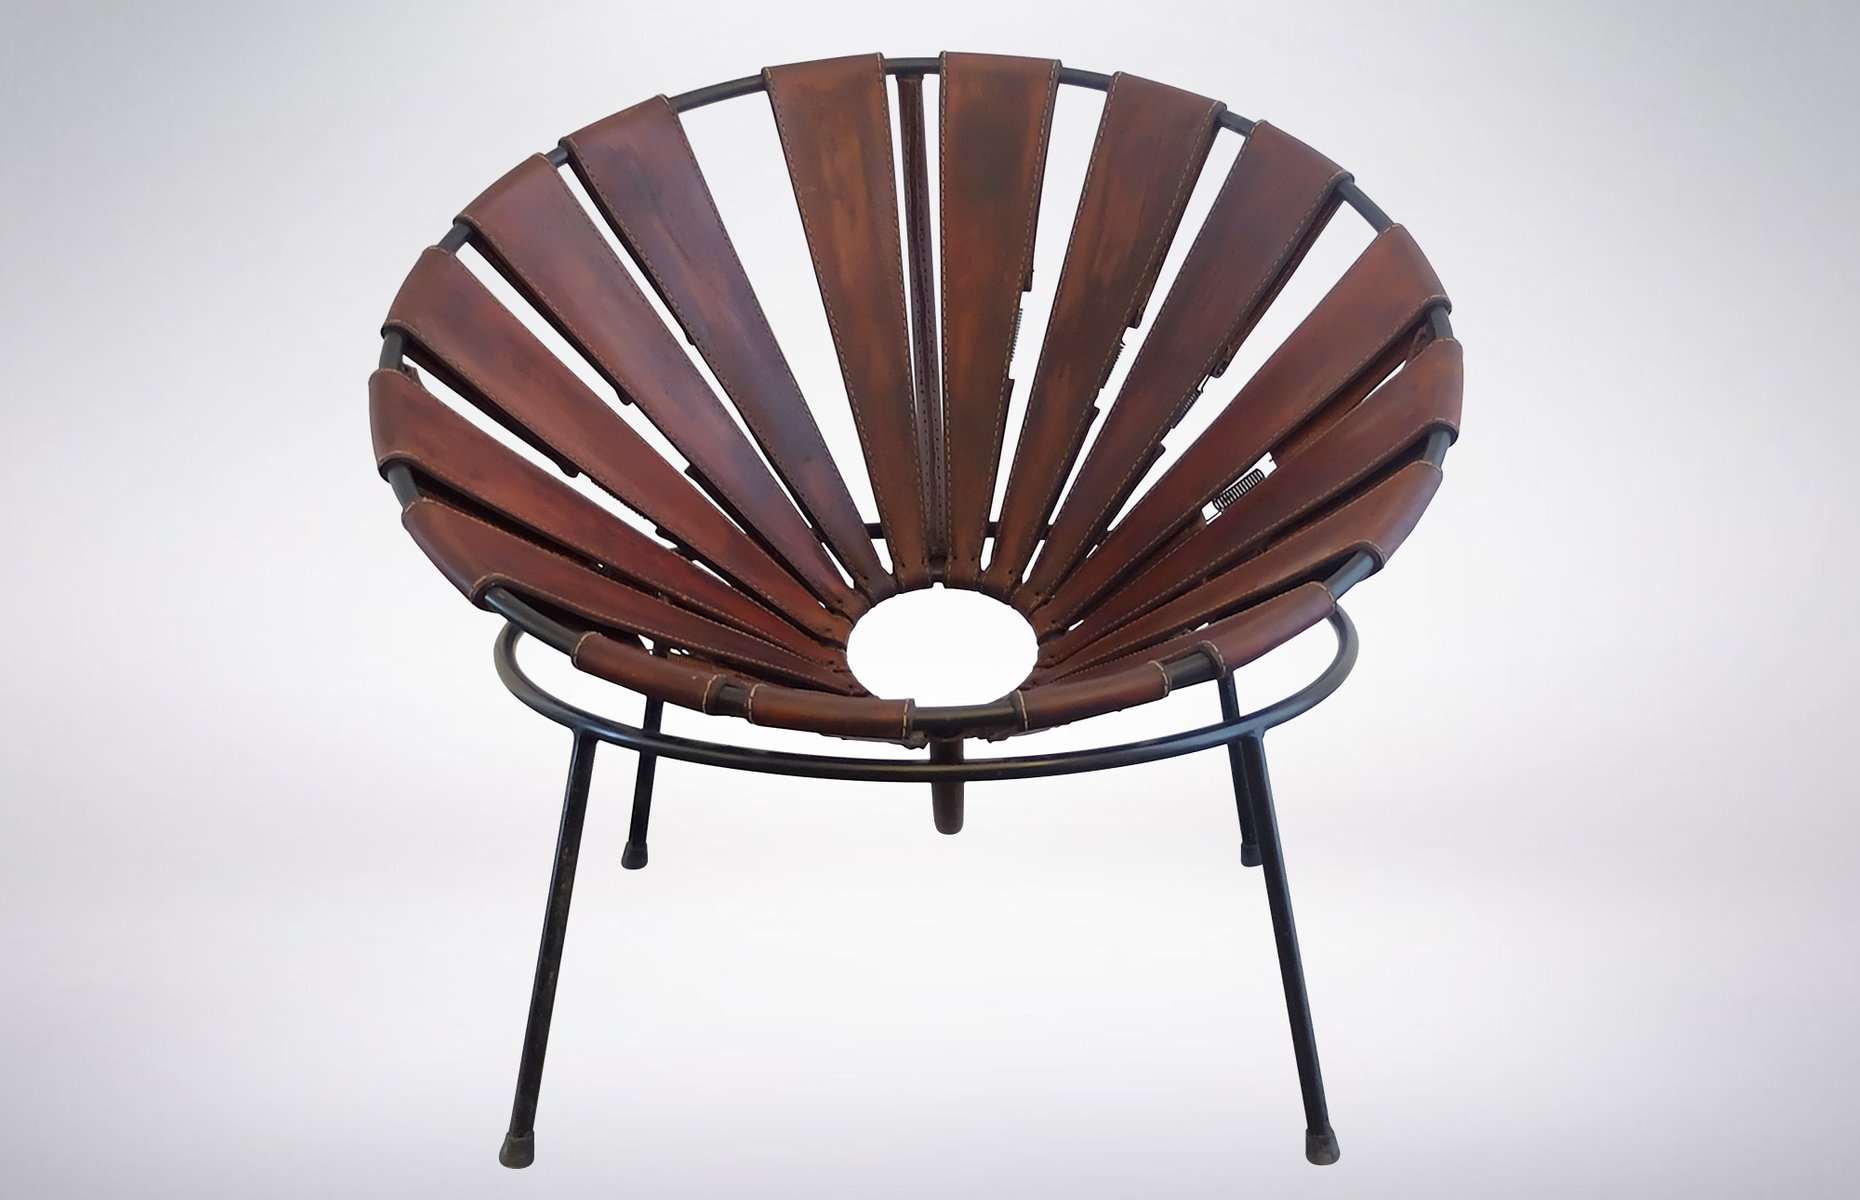 Bowl chair in leather by lina bo bardi 1950s for sale at for Lina bo bardi bowl